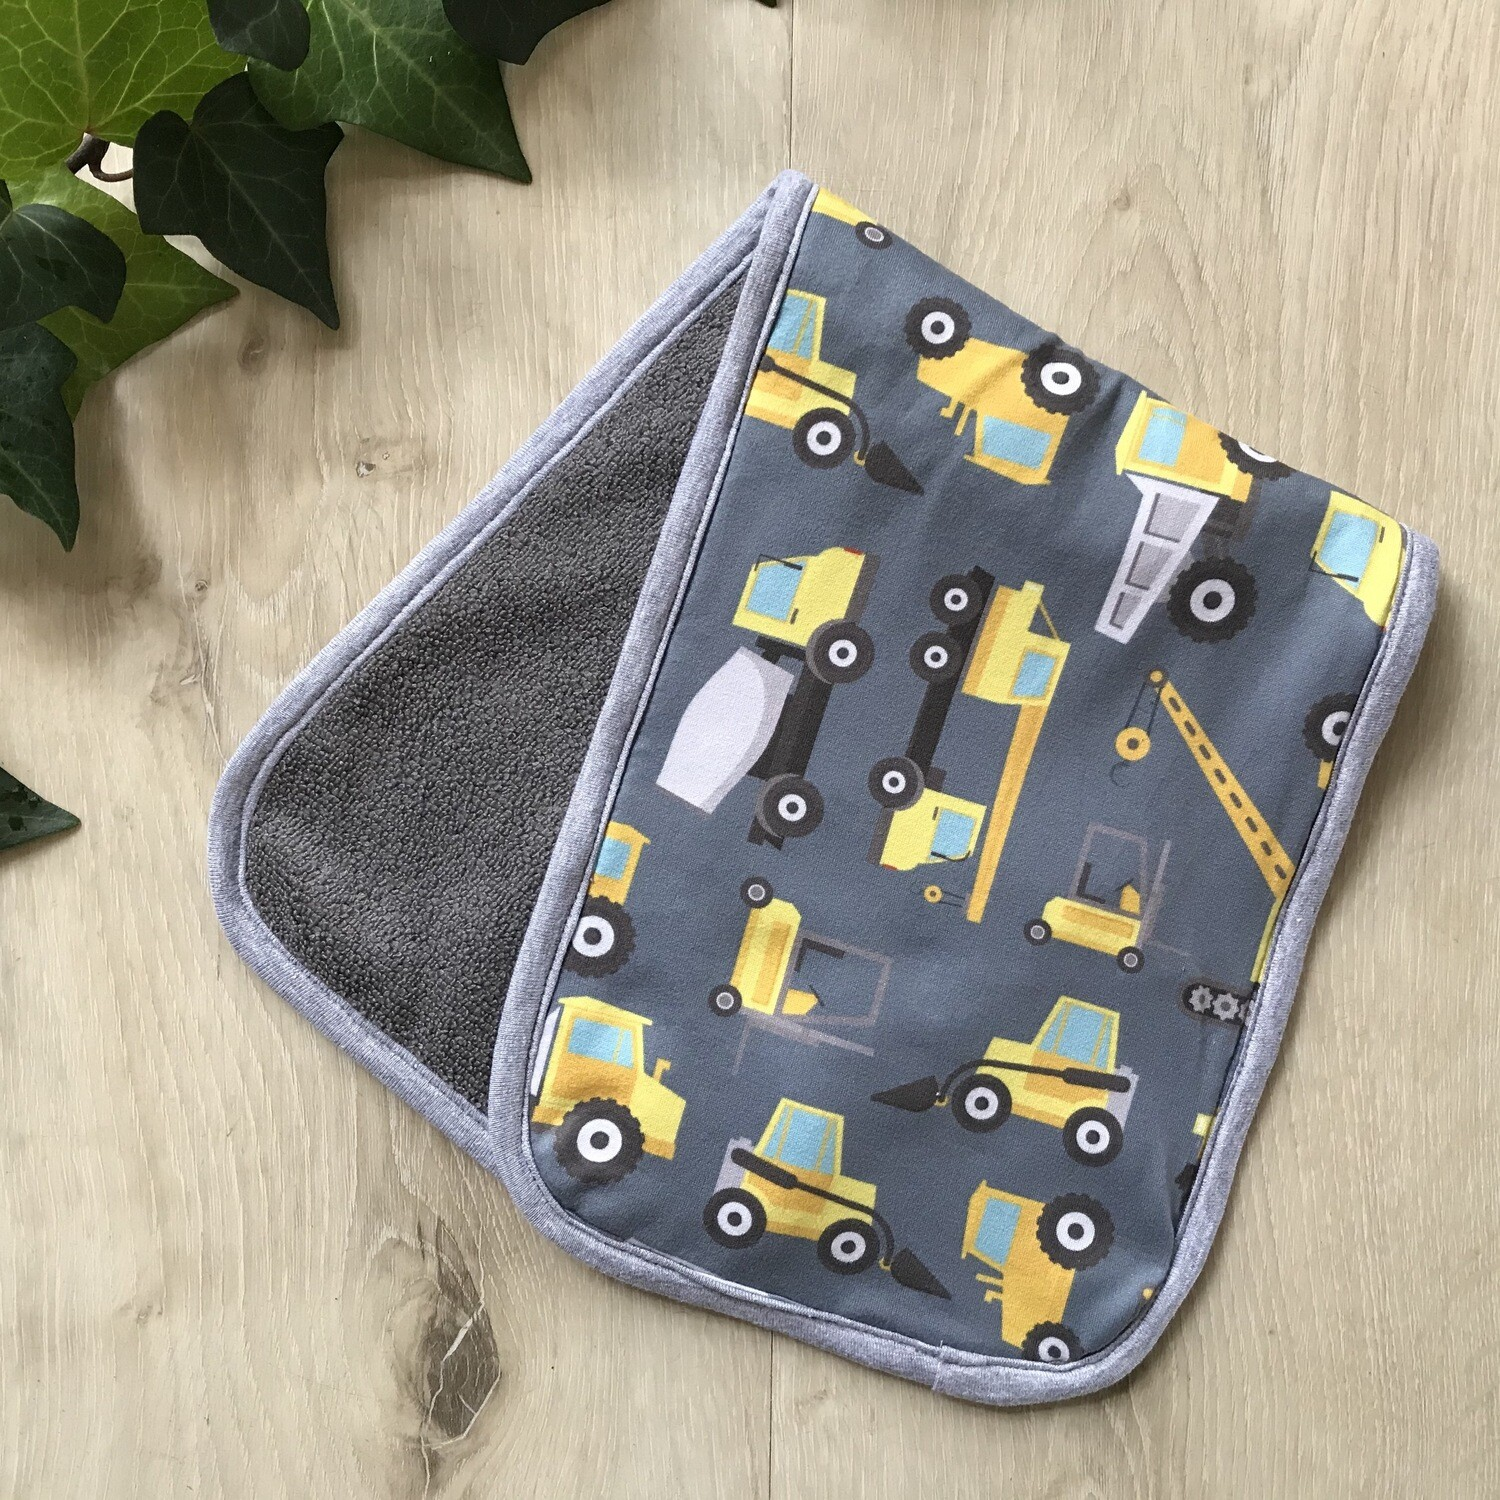 Construction burp cloth